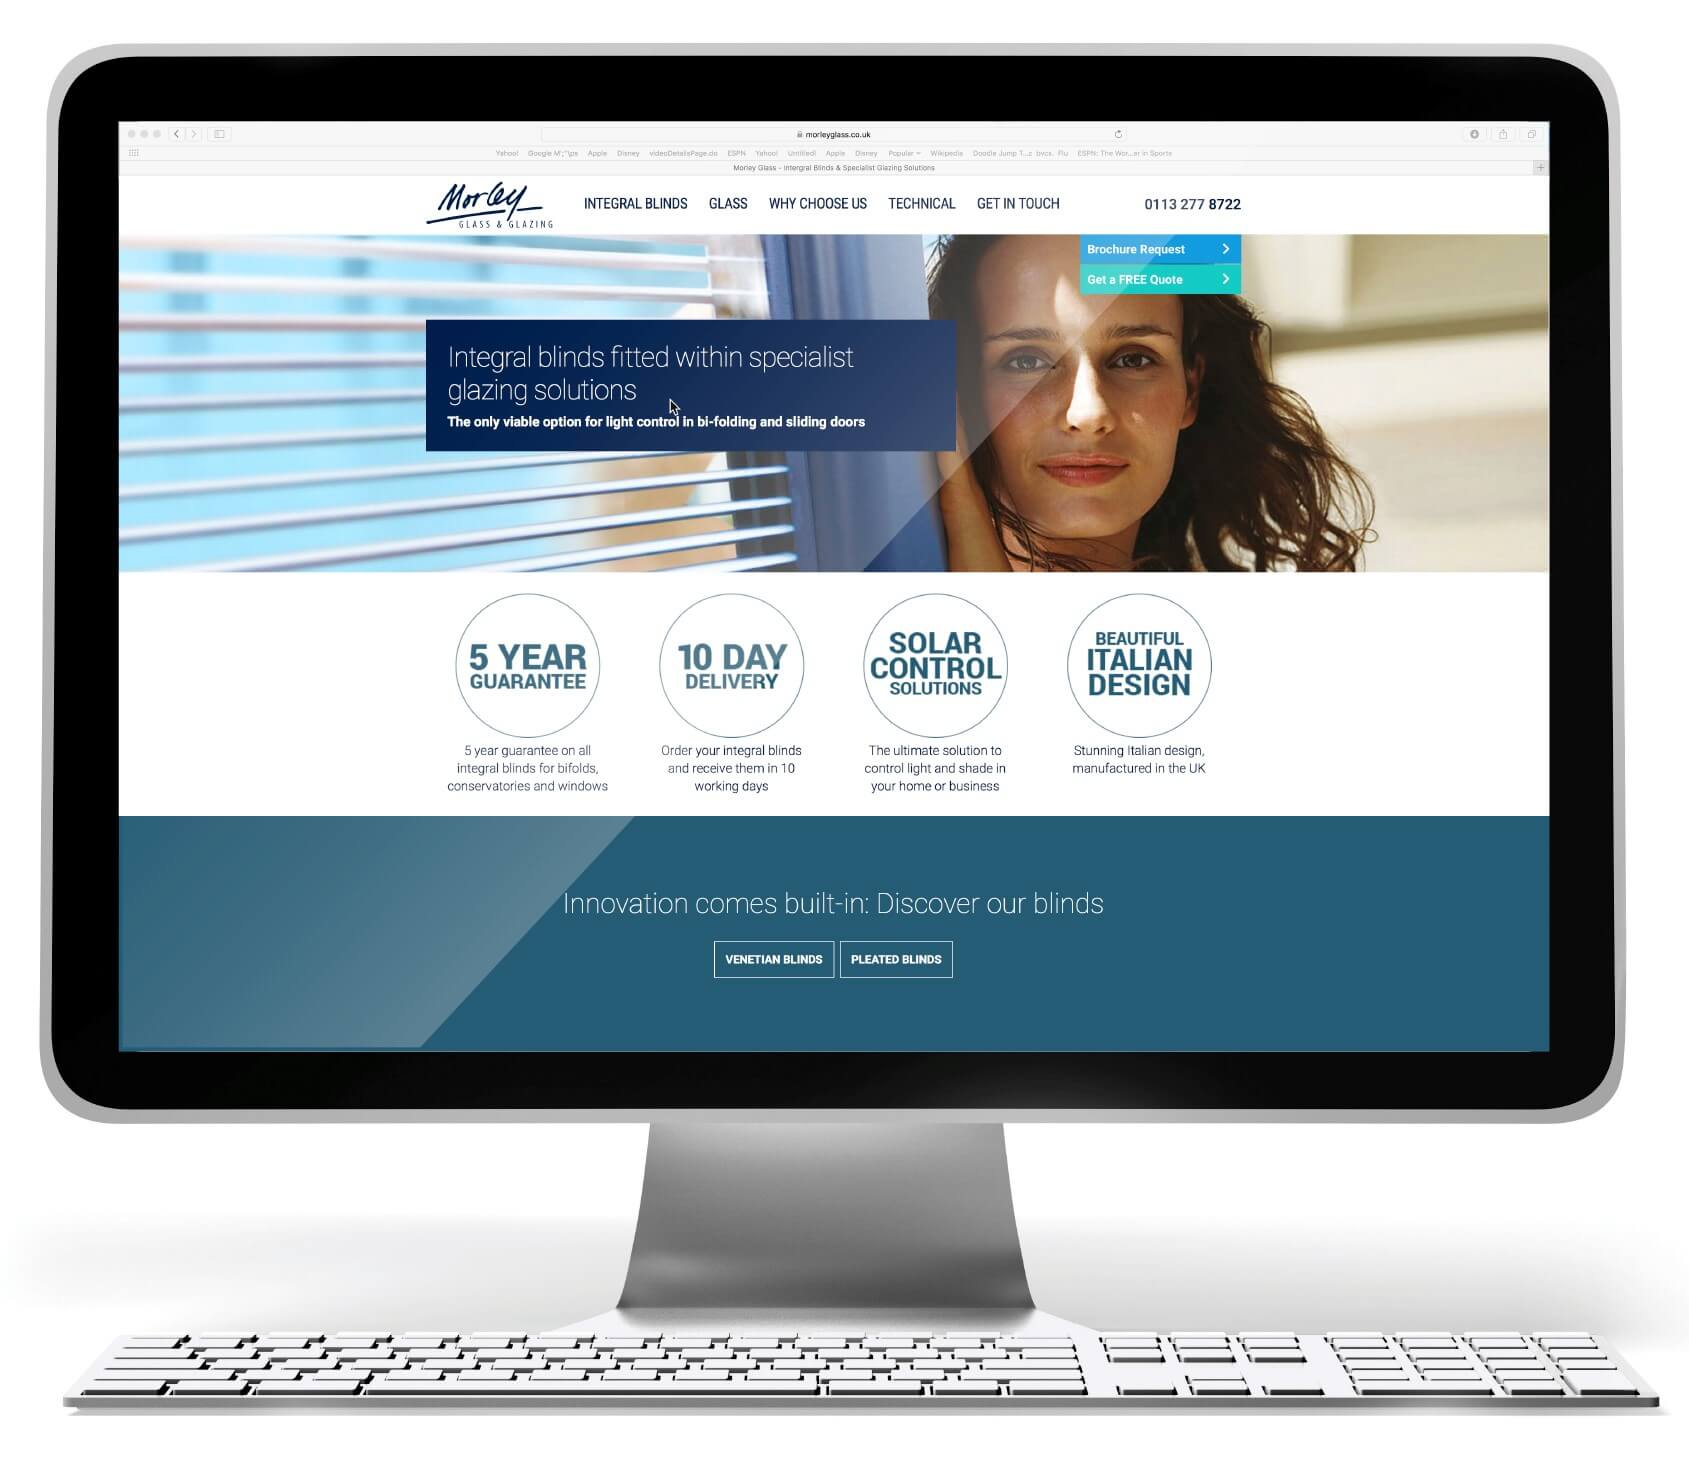 Morley website strengthens its commitment to customers